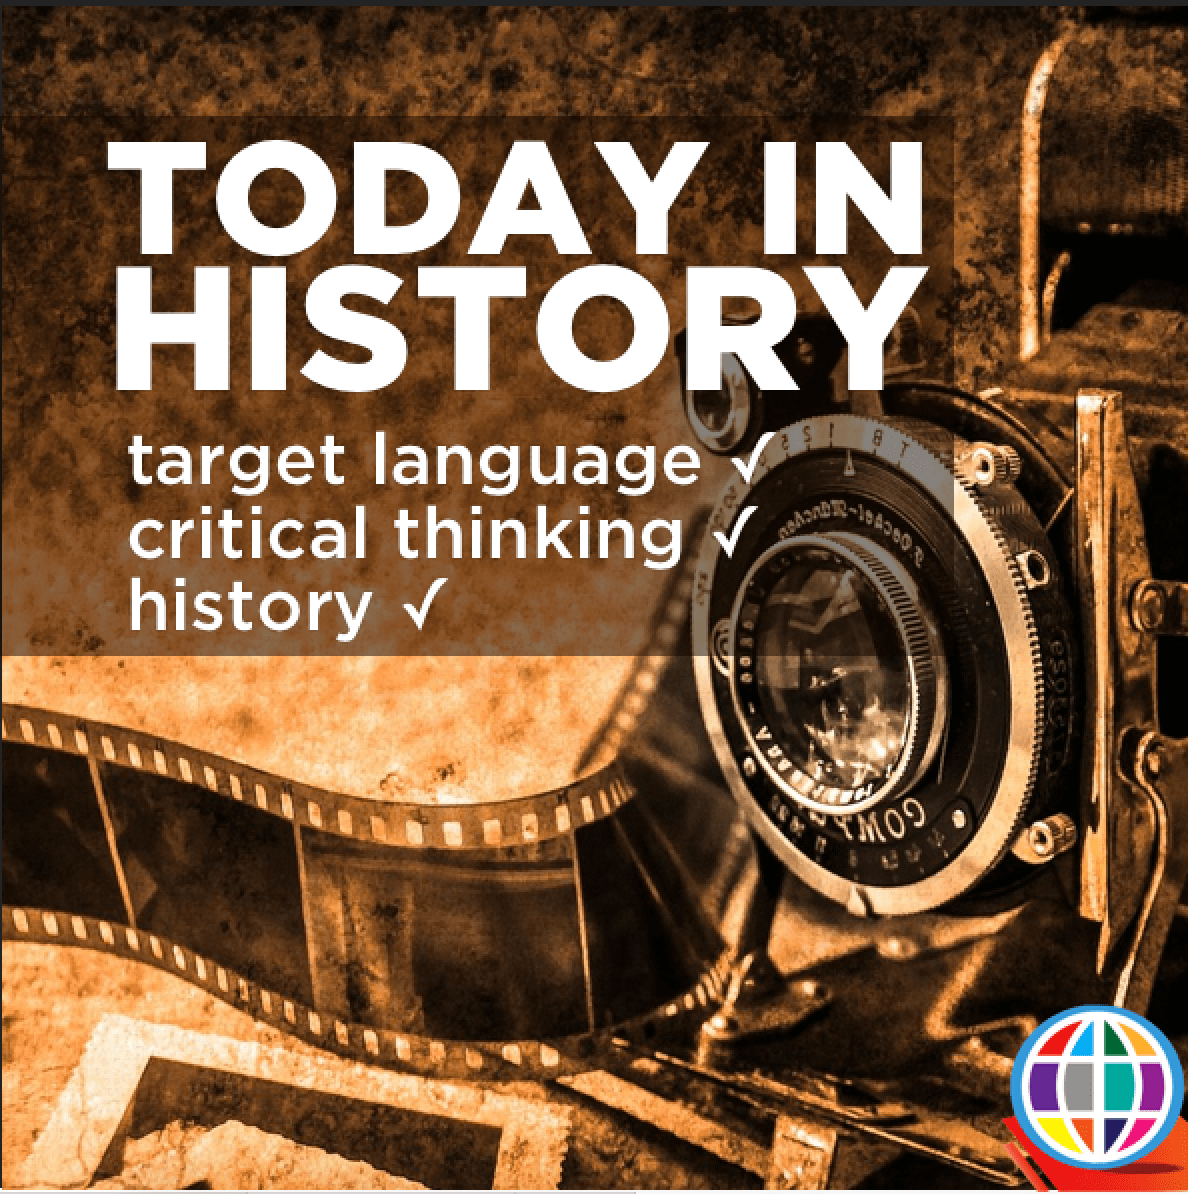 The today in history activity is a great way to engage students with a critical thinking activity in the target language - originally shared by Justin Slocum Bailey of Indwelling Language